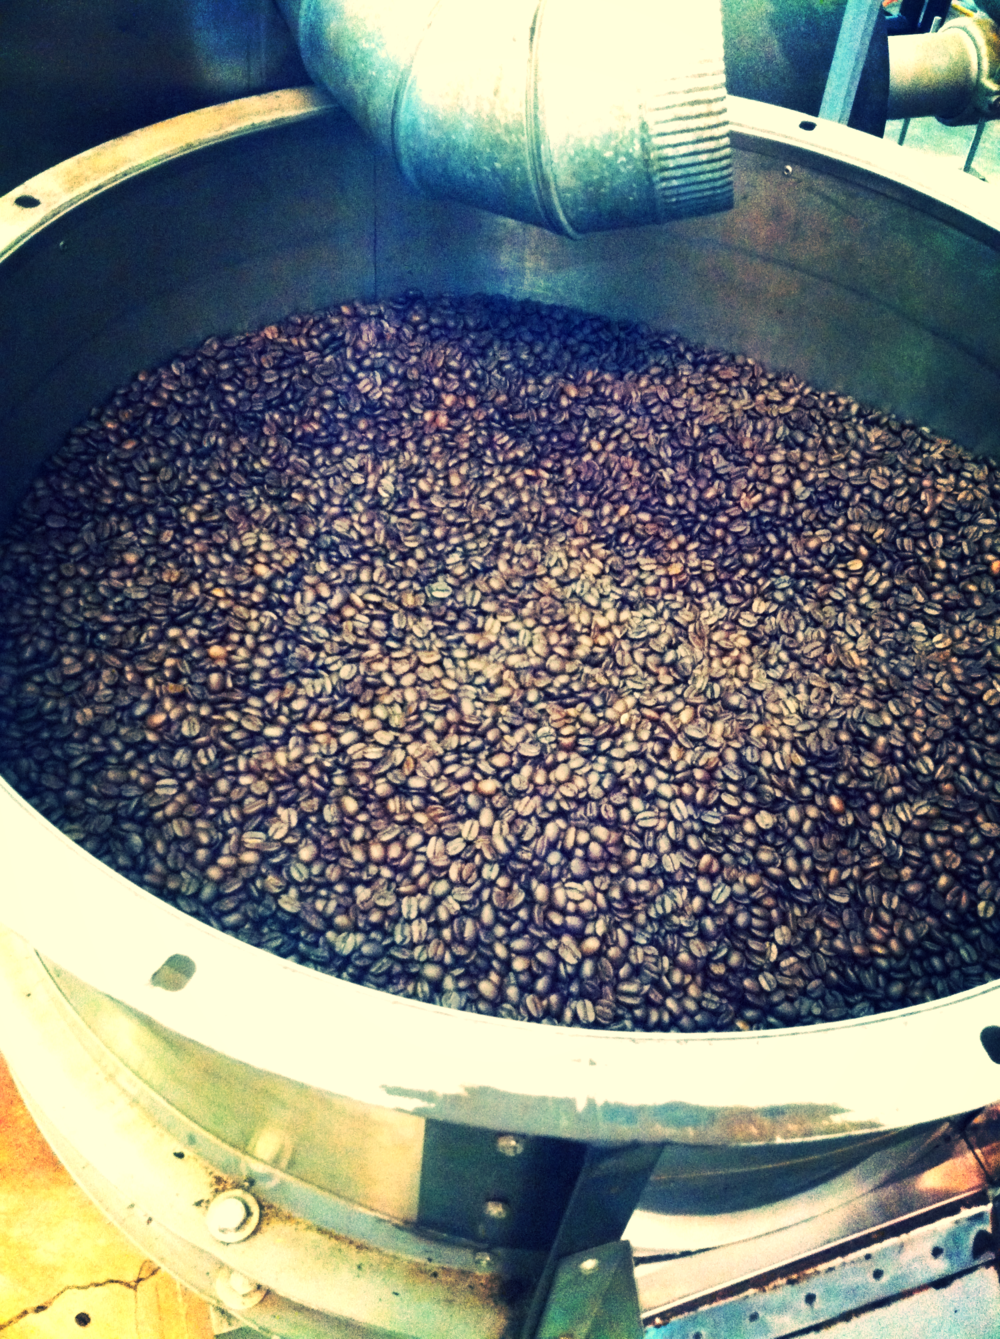 Beans after roasting.